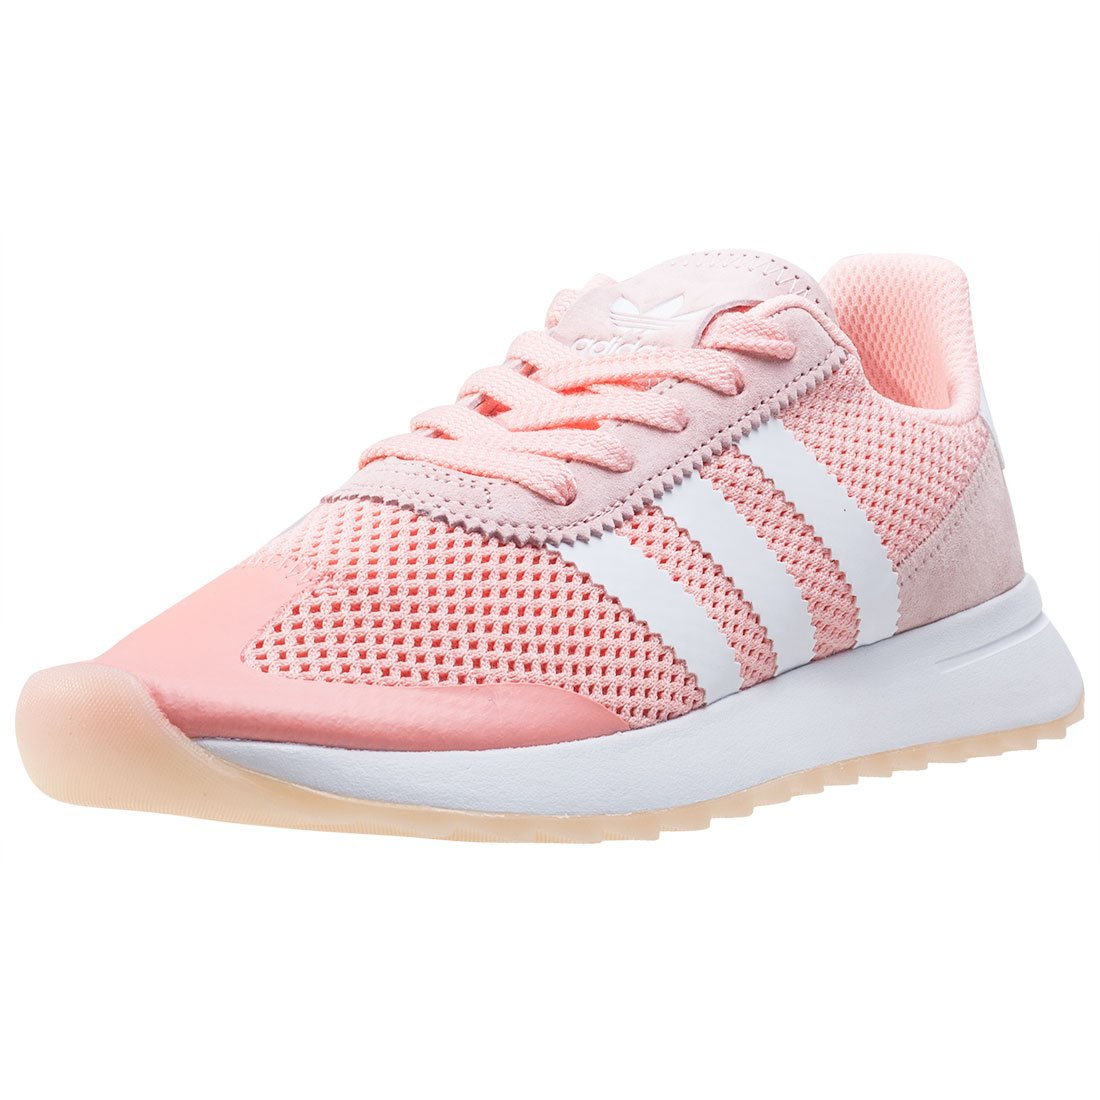 070c792018833 adidas FLB W Womens Trainers: Amazon.co.uk: Shoes & Bags